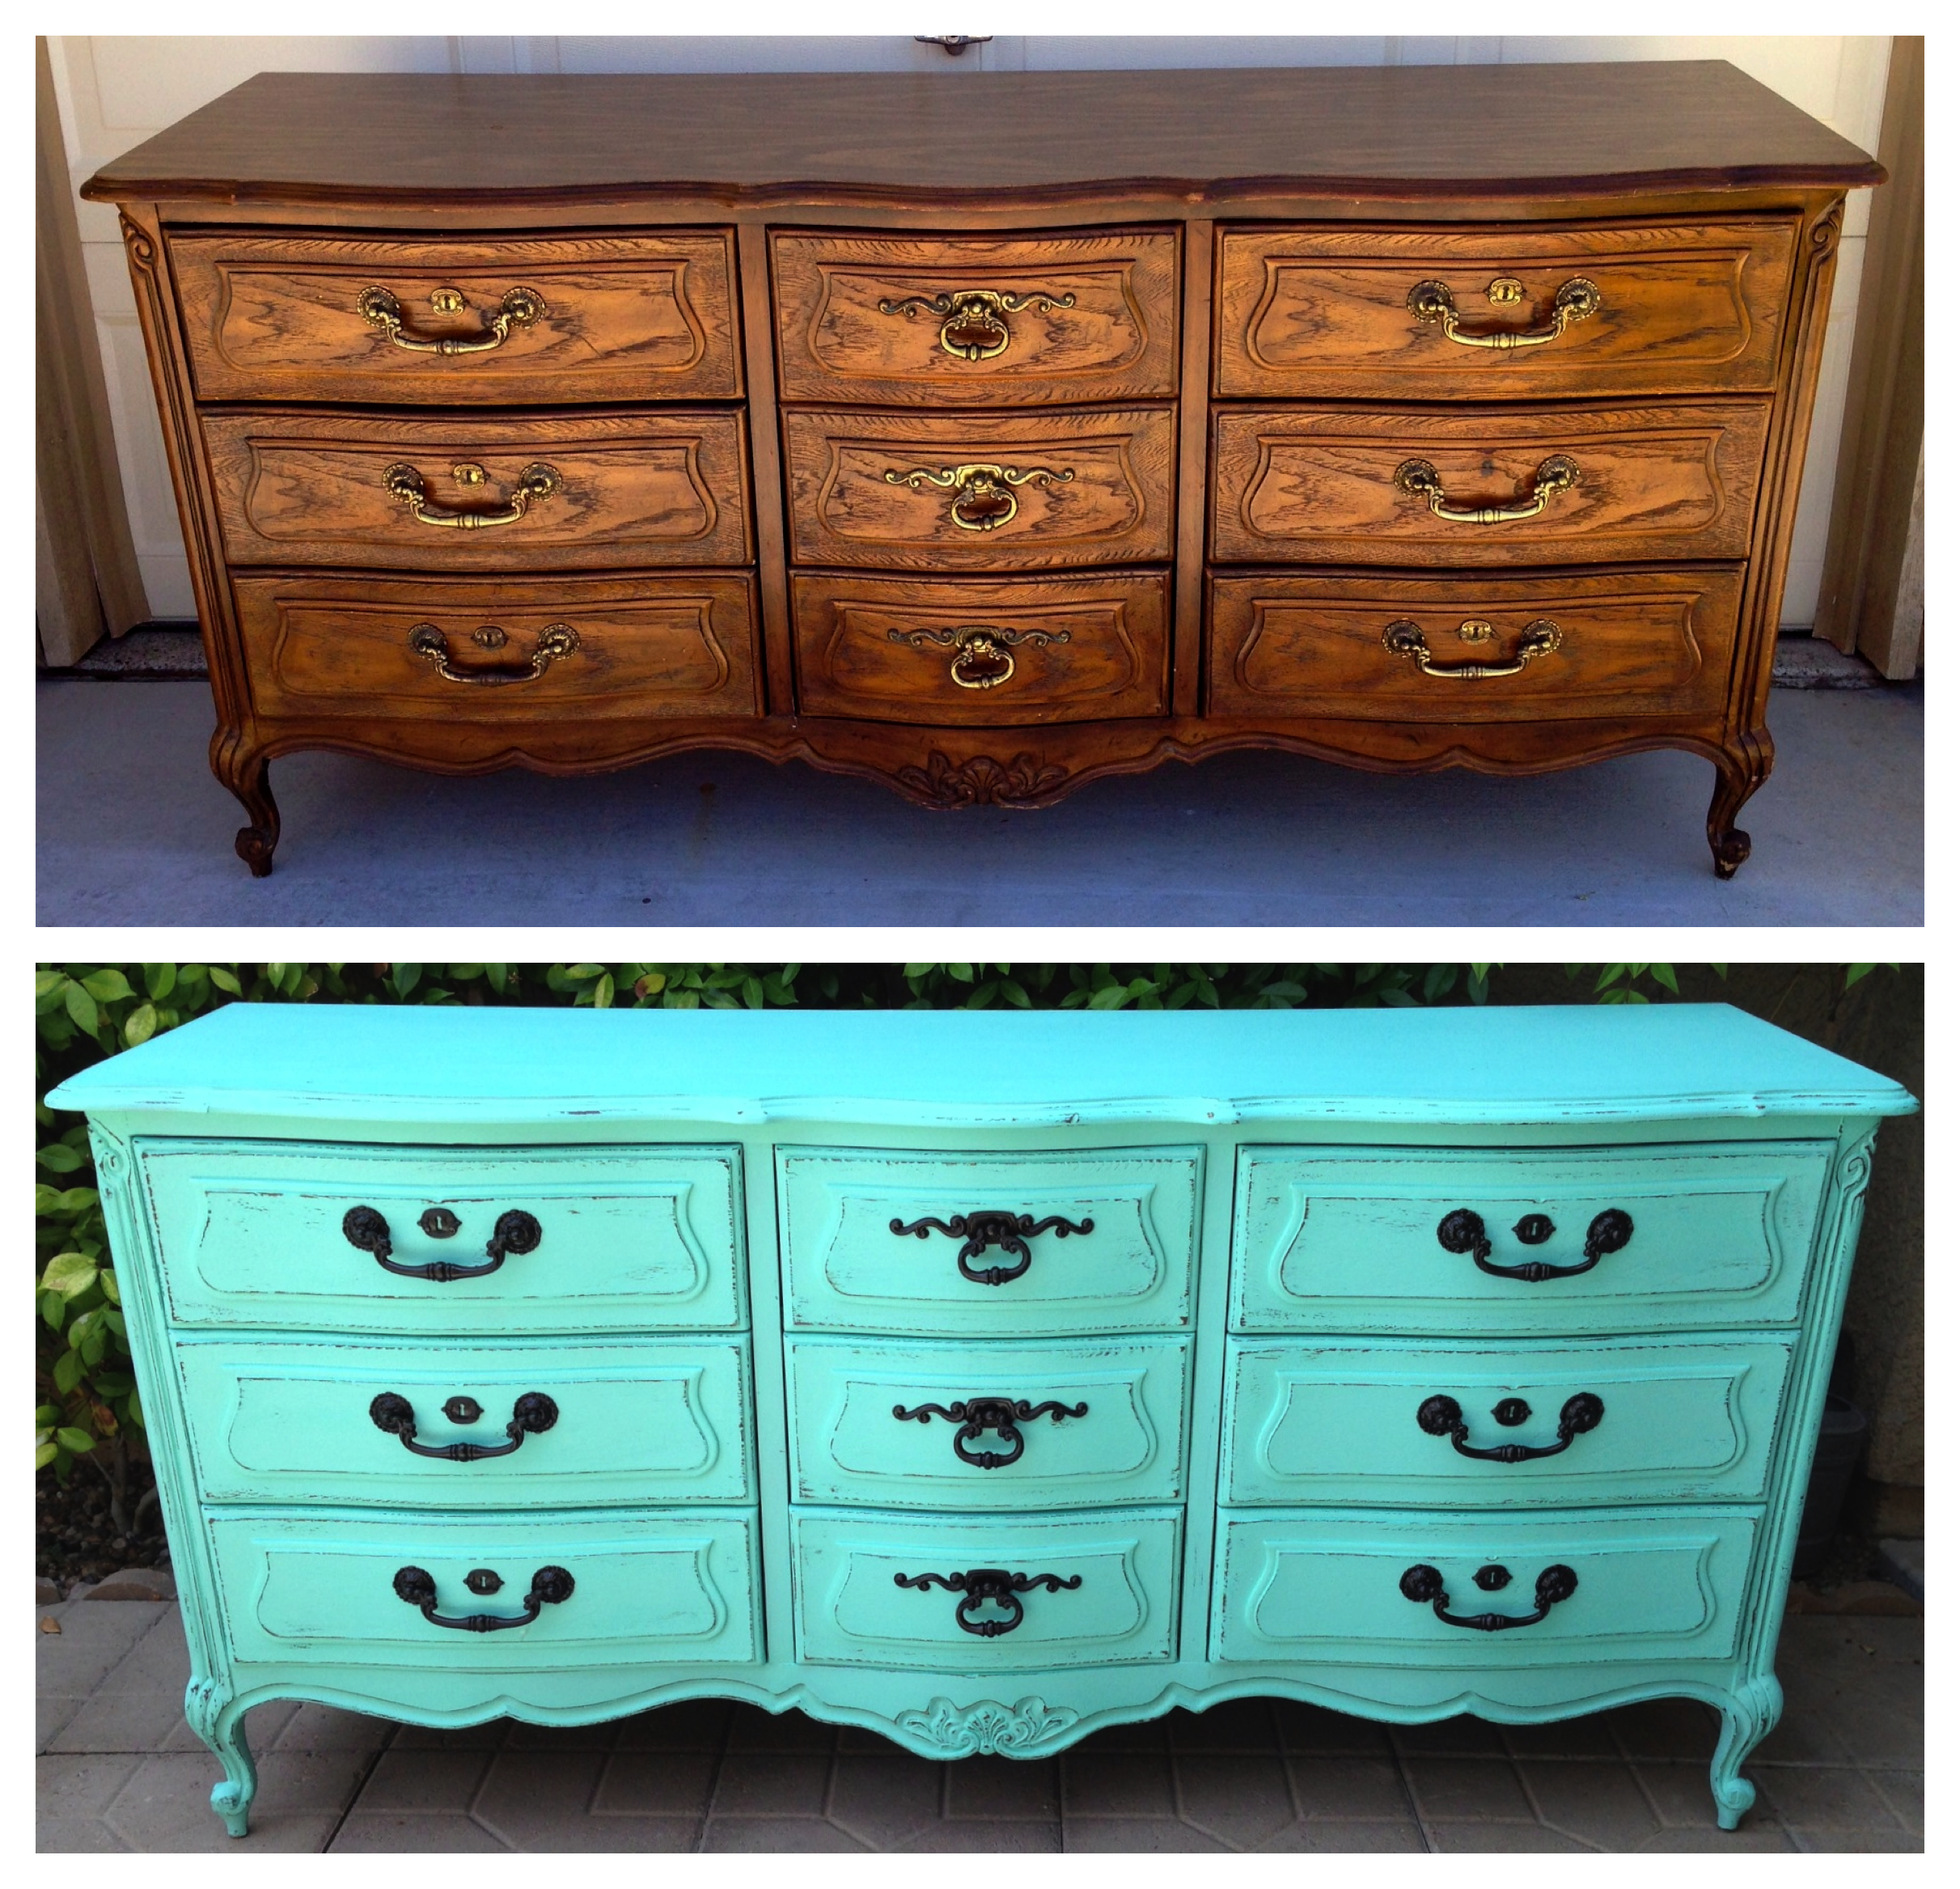 re after refurbishingfurniture dresser furniture do saltwater living on before refurbished